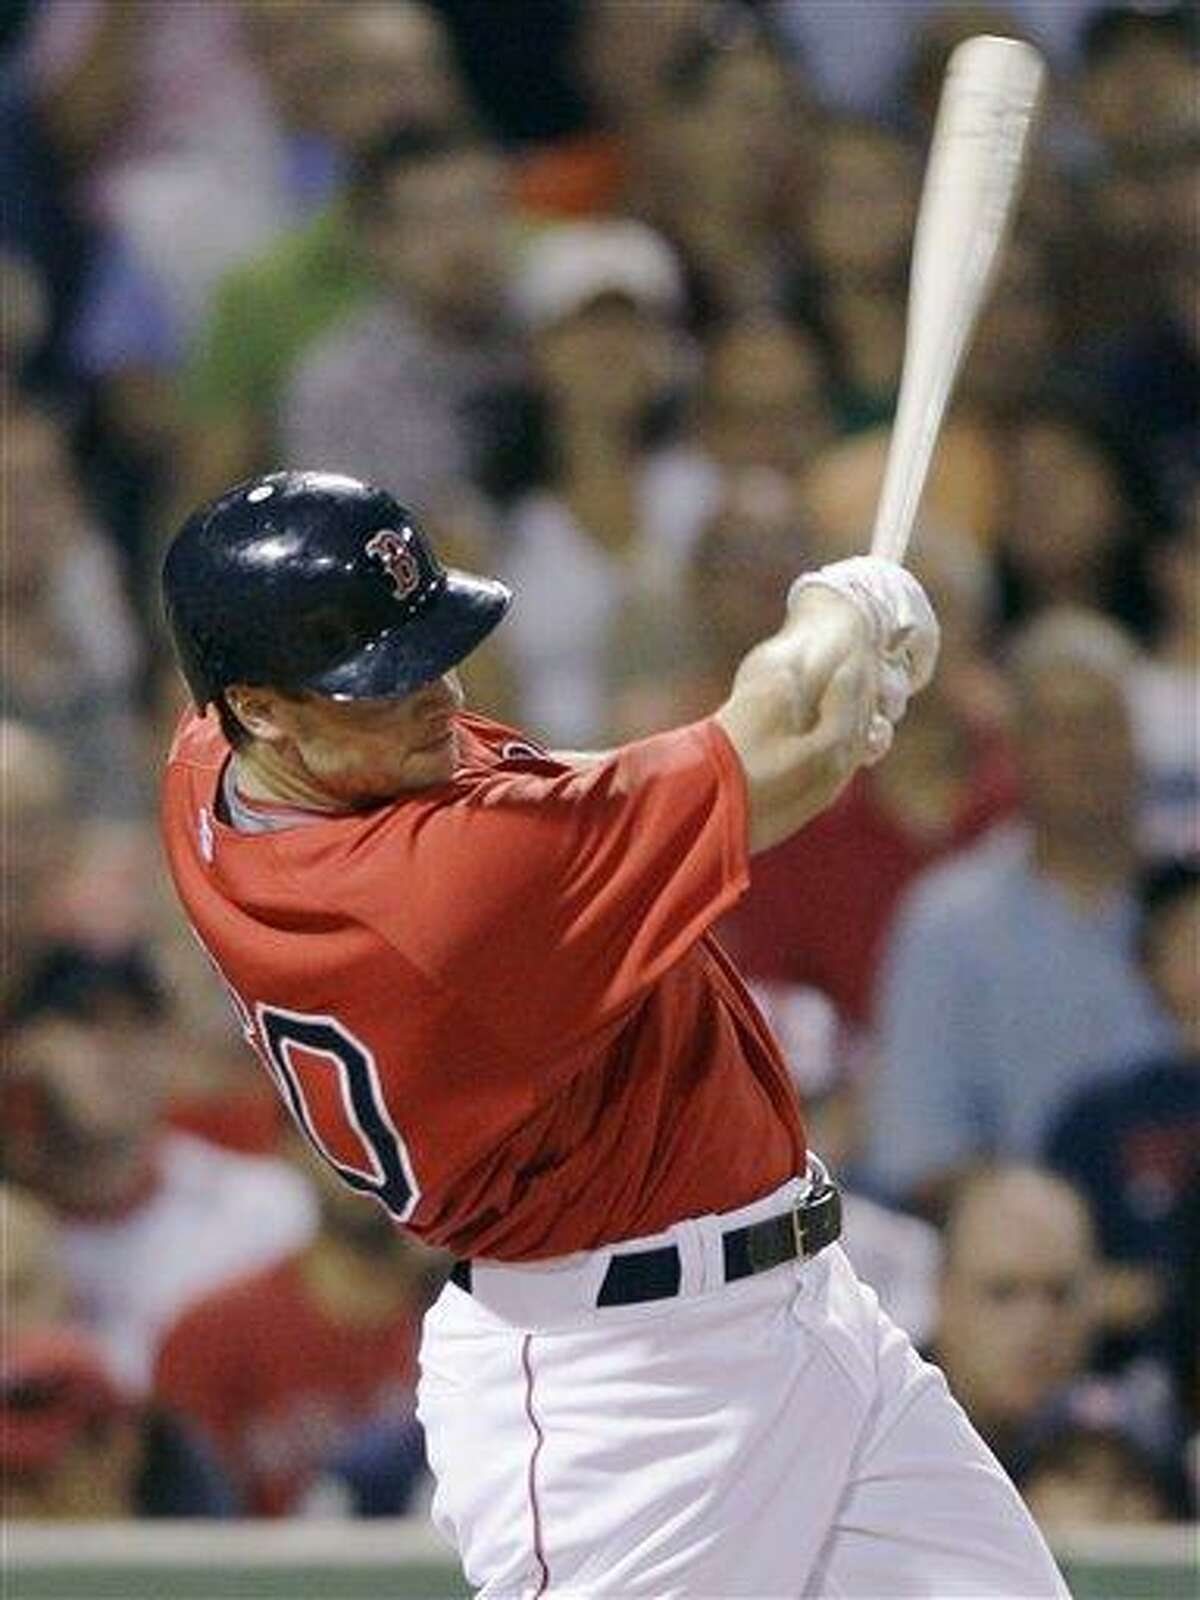 Boston Red Sox pinch hitter Daniel Nava follows through on his RBI single, breaking a 2-2 tie, against the Baltimore Orioles during the eighth inning of their baseball game at Fenway Park in Boston, Friday, July 2, 2010.(AP Photo/Charles Krupa)